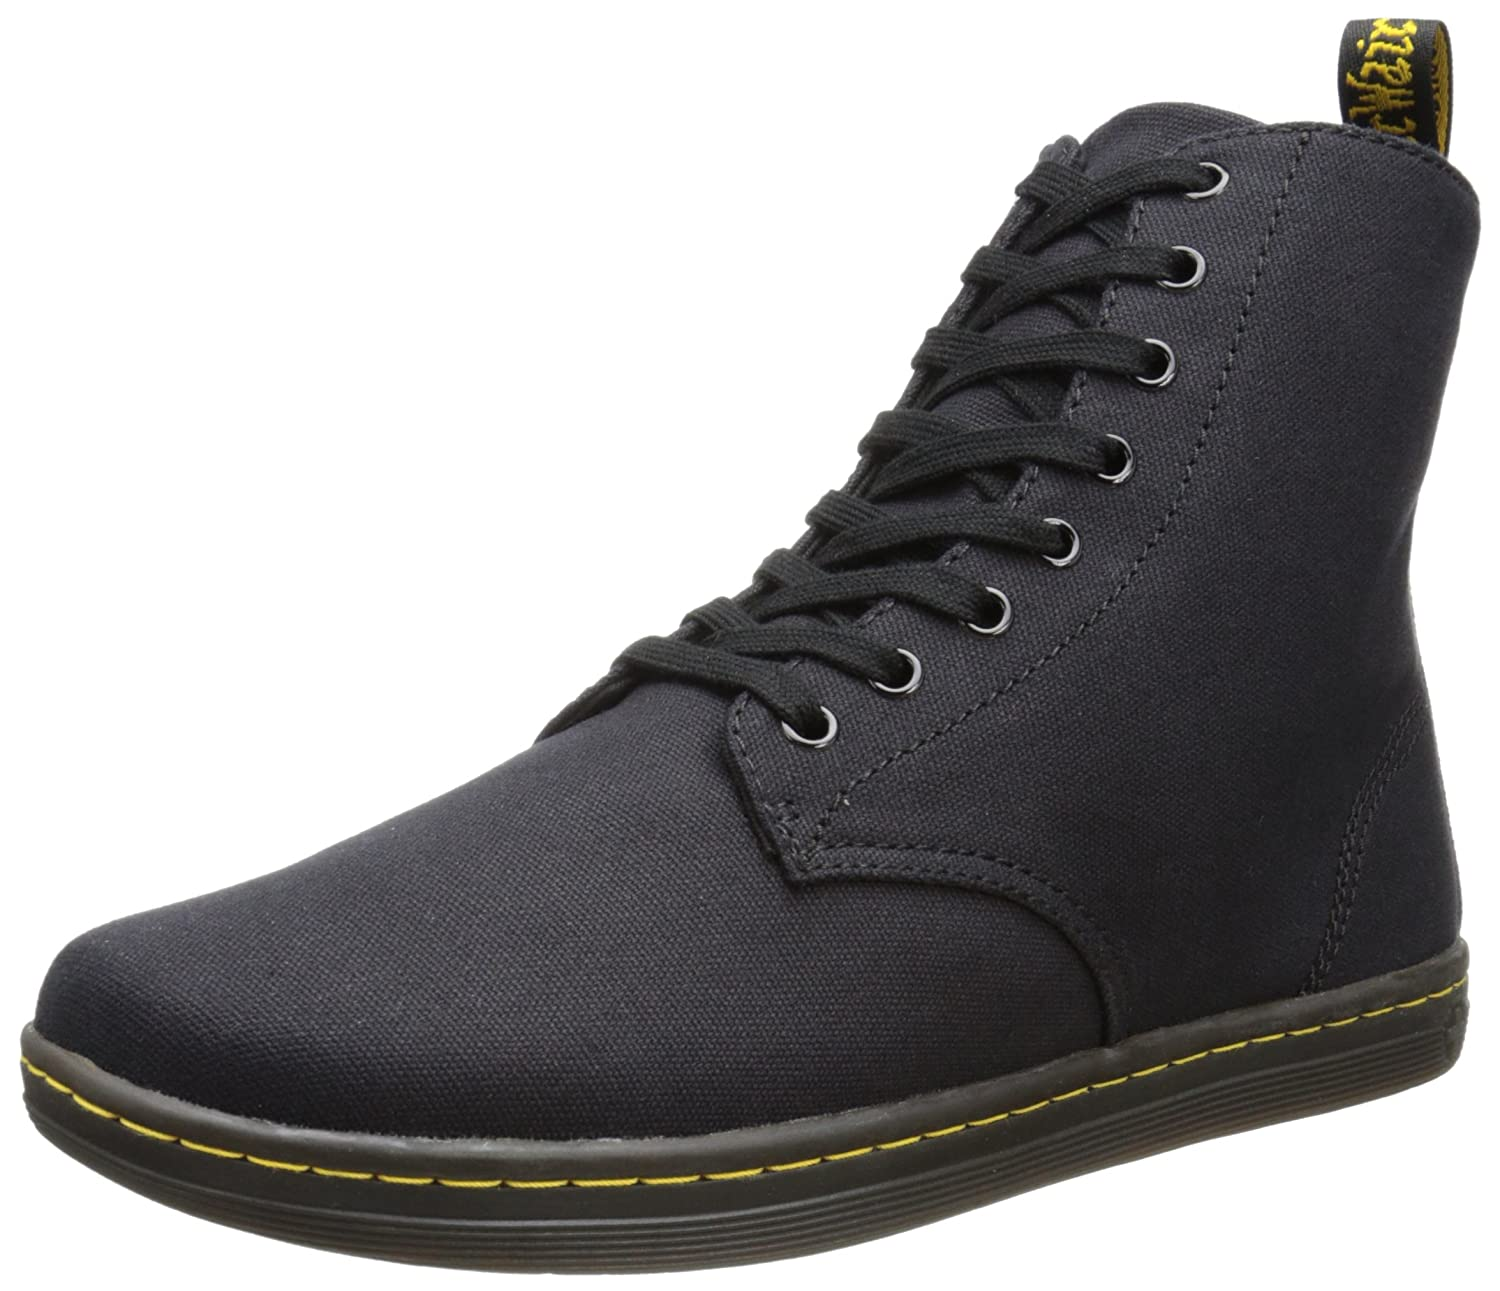 Buy Salt N Pepper Black Boots for Men Online United States Best Prices Reviews SA336SH80FGOINDFAS